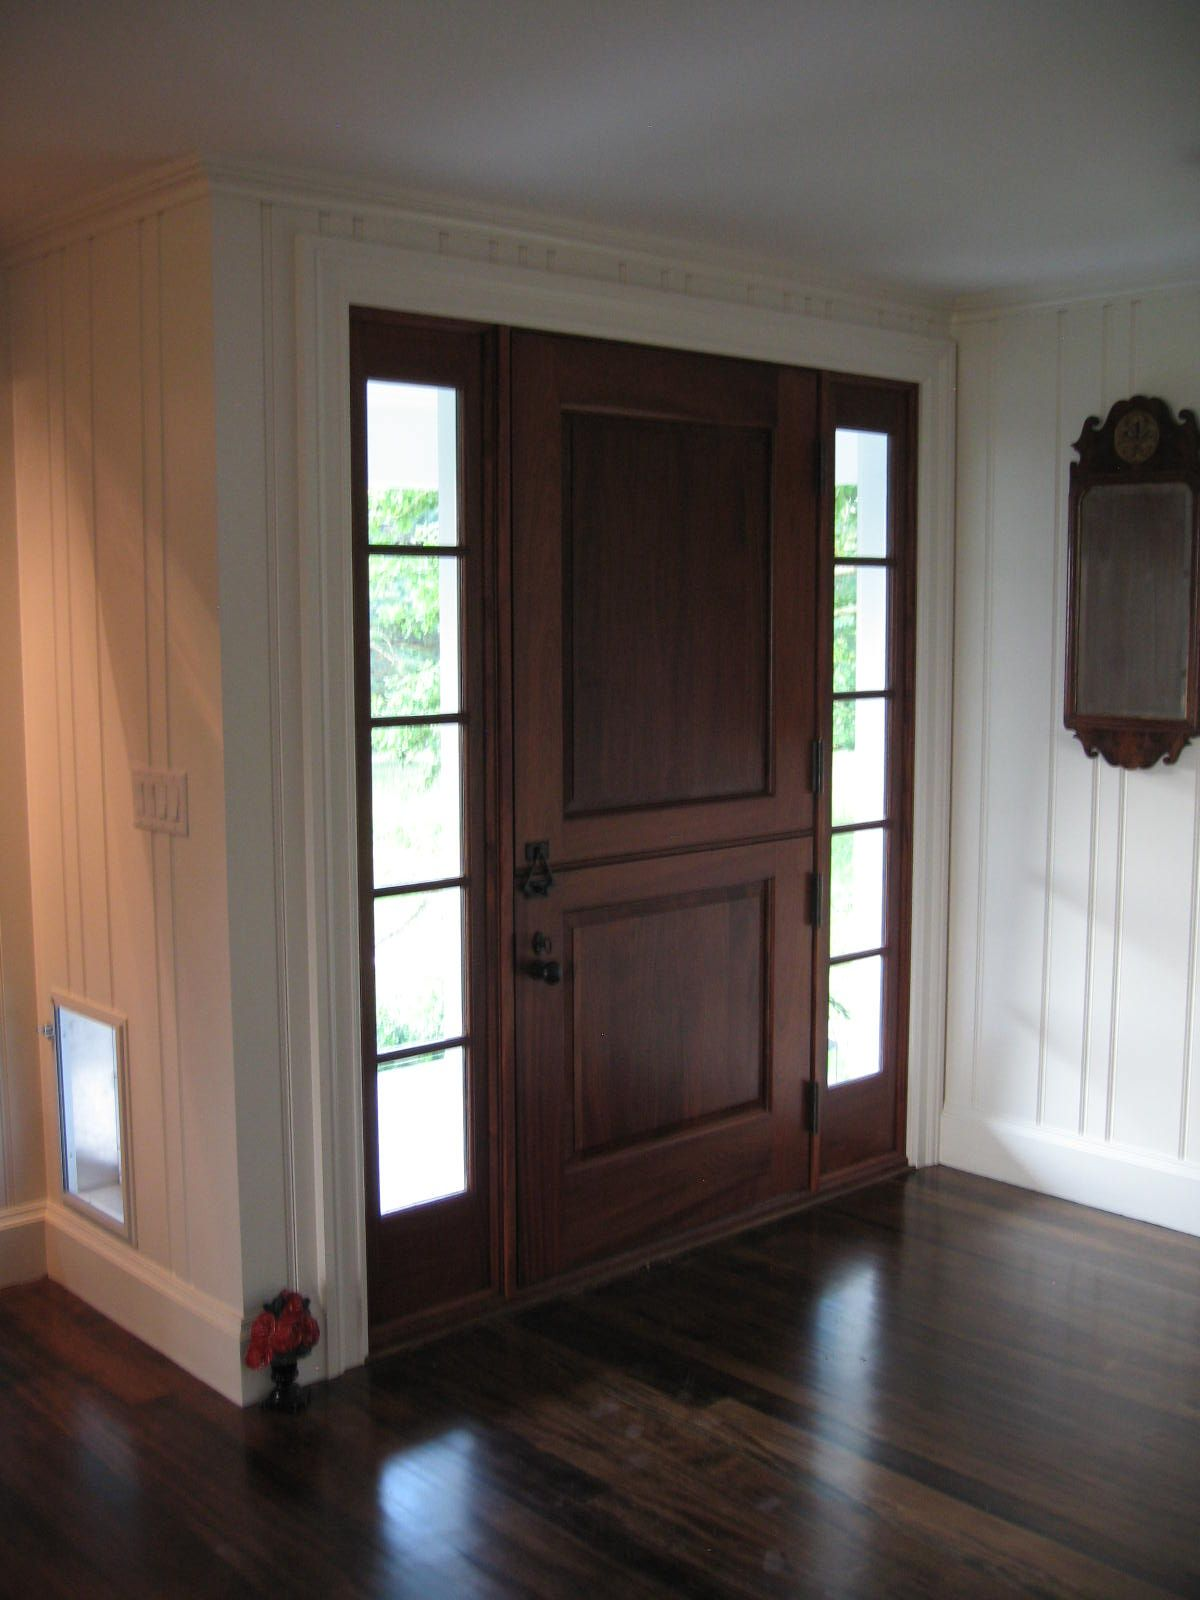 n door ralng nteror ralng desgns ron.htm exterior dutch door dd241 solid wood model www vintagedoors  exterior dutch door dd241 solid wood